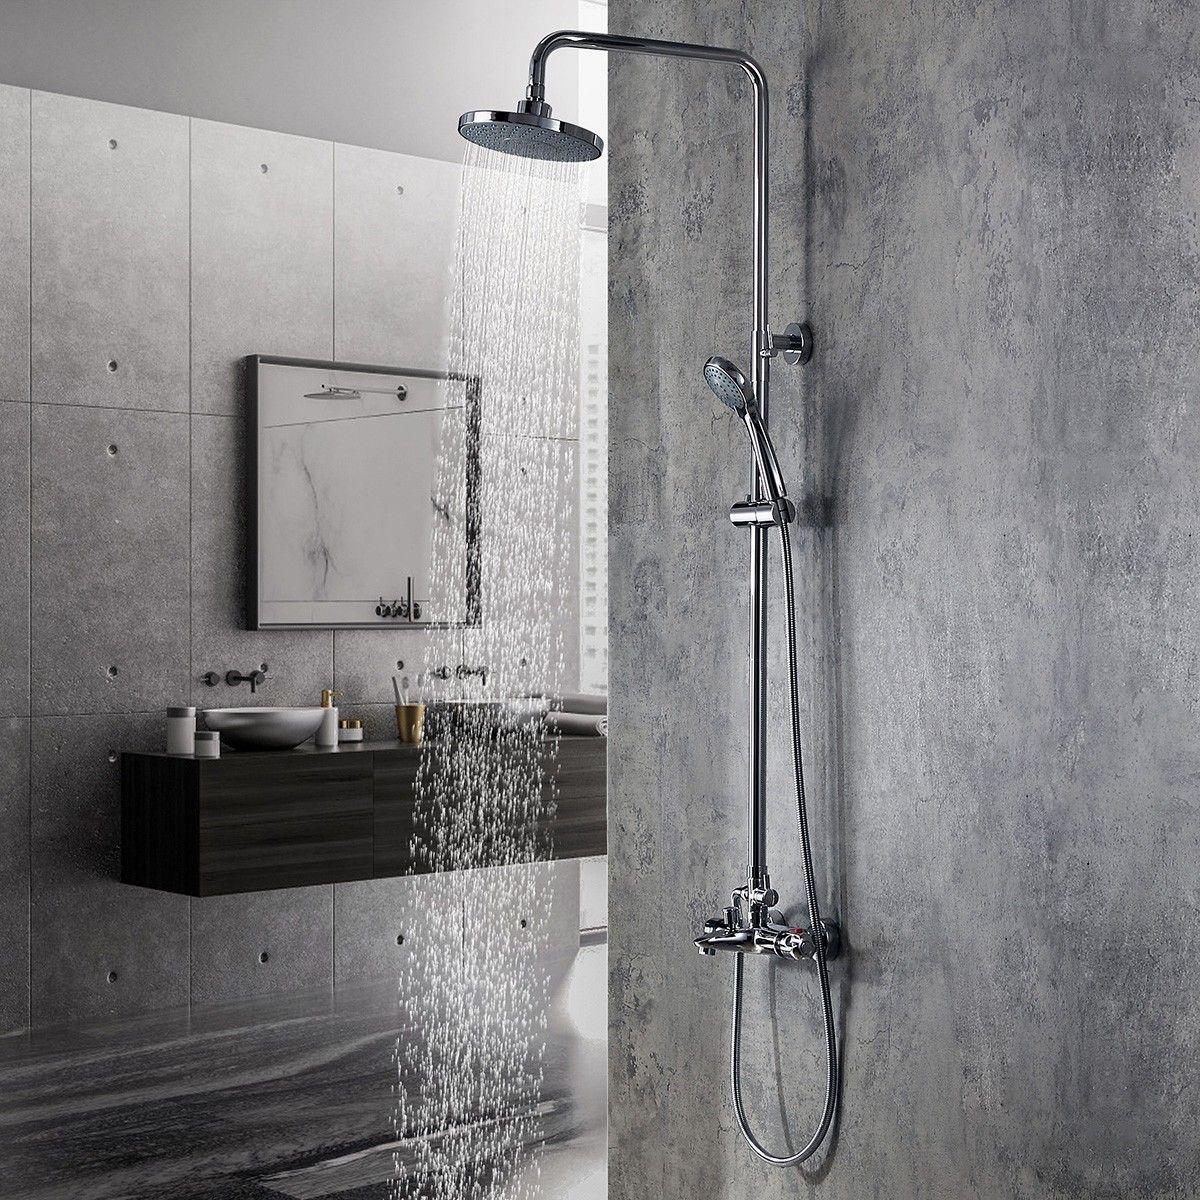 Modern Polished Chrome Exposed Thermostatic Rain Shower System With Handheld Shower Tub Spout Solid Brass Shower Systems Rain Shower System Shower Tub